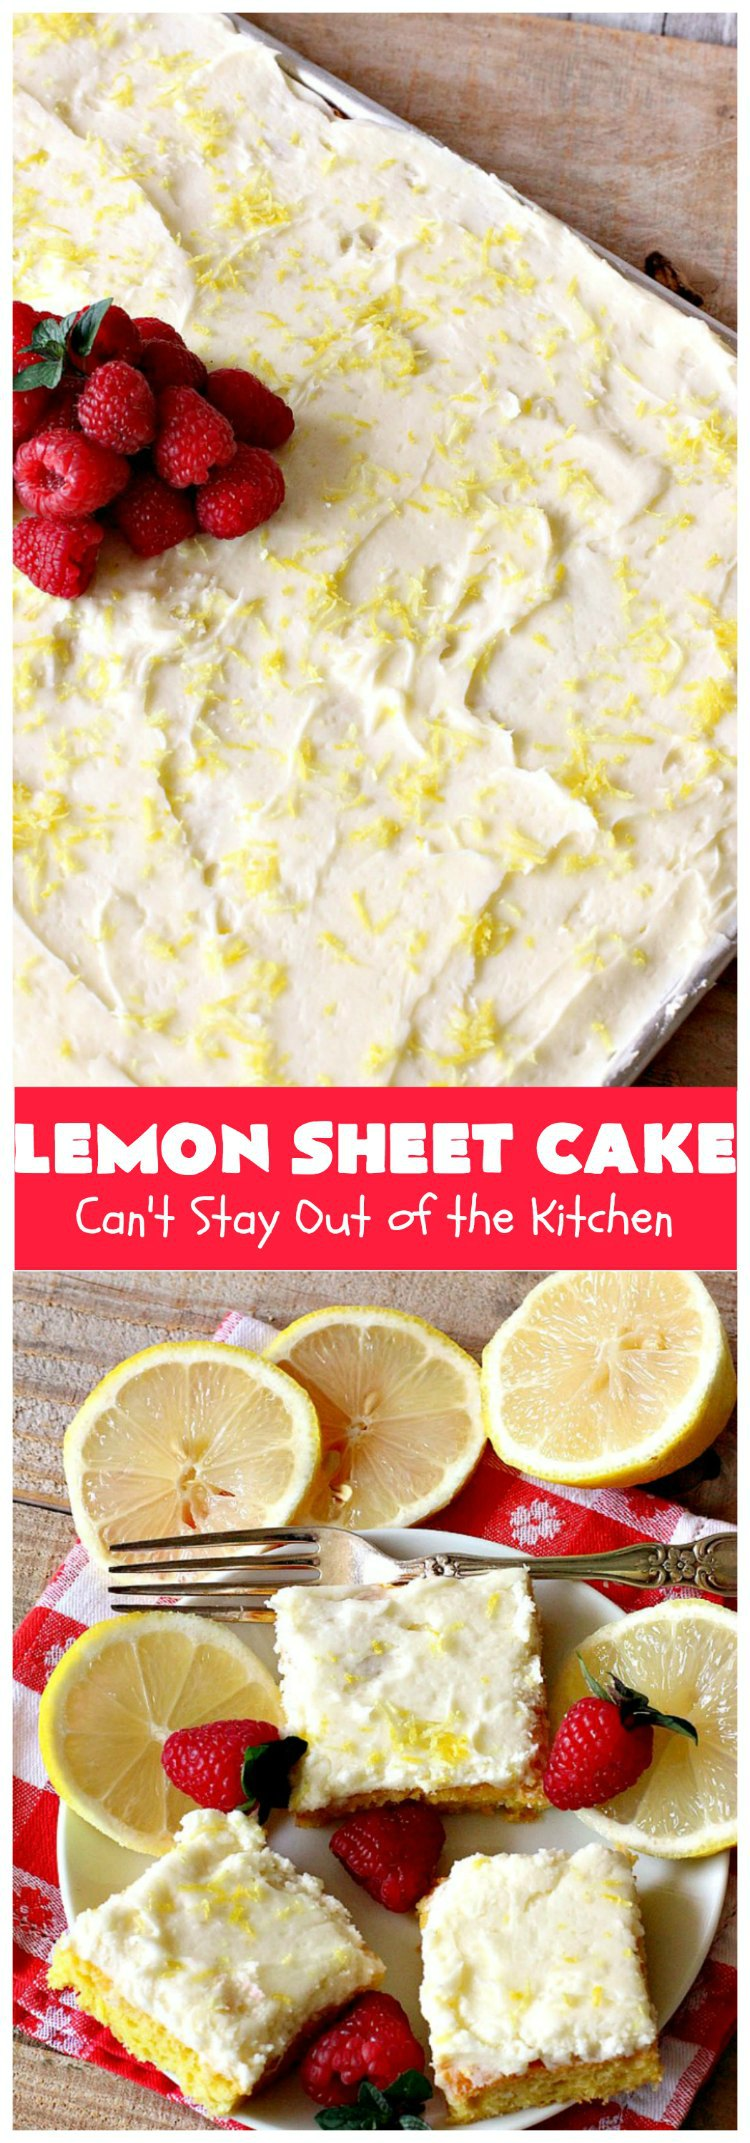 Lemon Sheet Cake   Can't Stay Out of the Kitchen